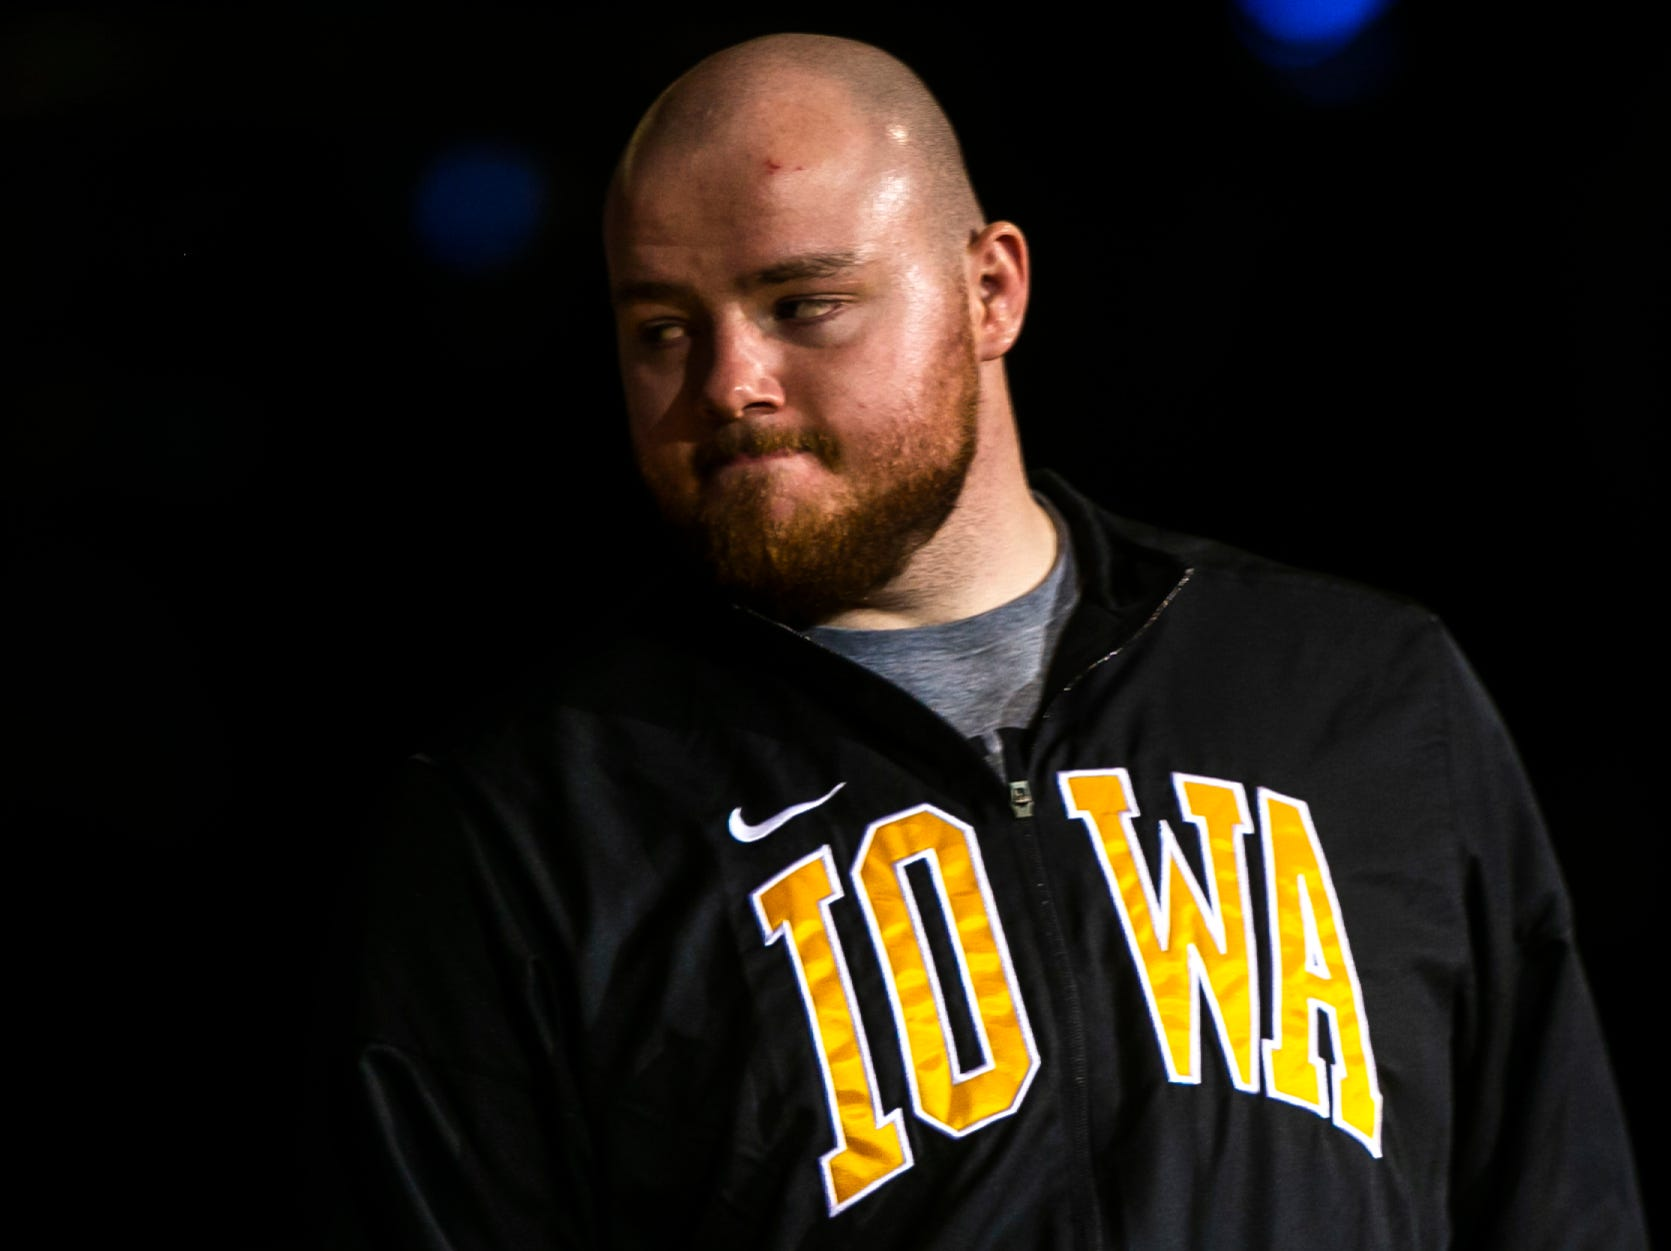 Iowa's Sam Stoll is introduced during a NCAA Big Ten Conference wrestling dual on Friday, Jan. 18, 2019, at Carver-Hawkeye Arena in Iowa City, Iowa.